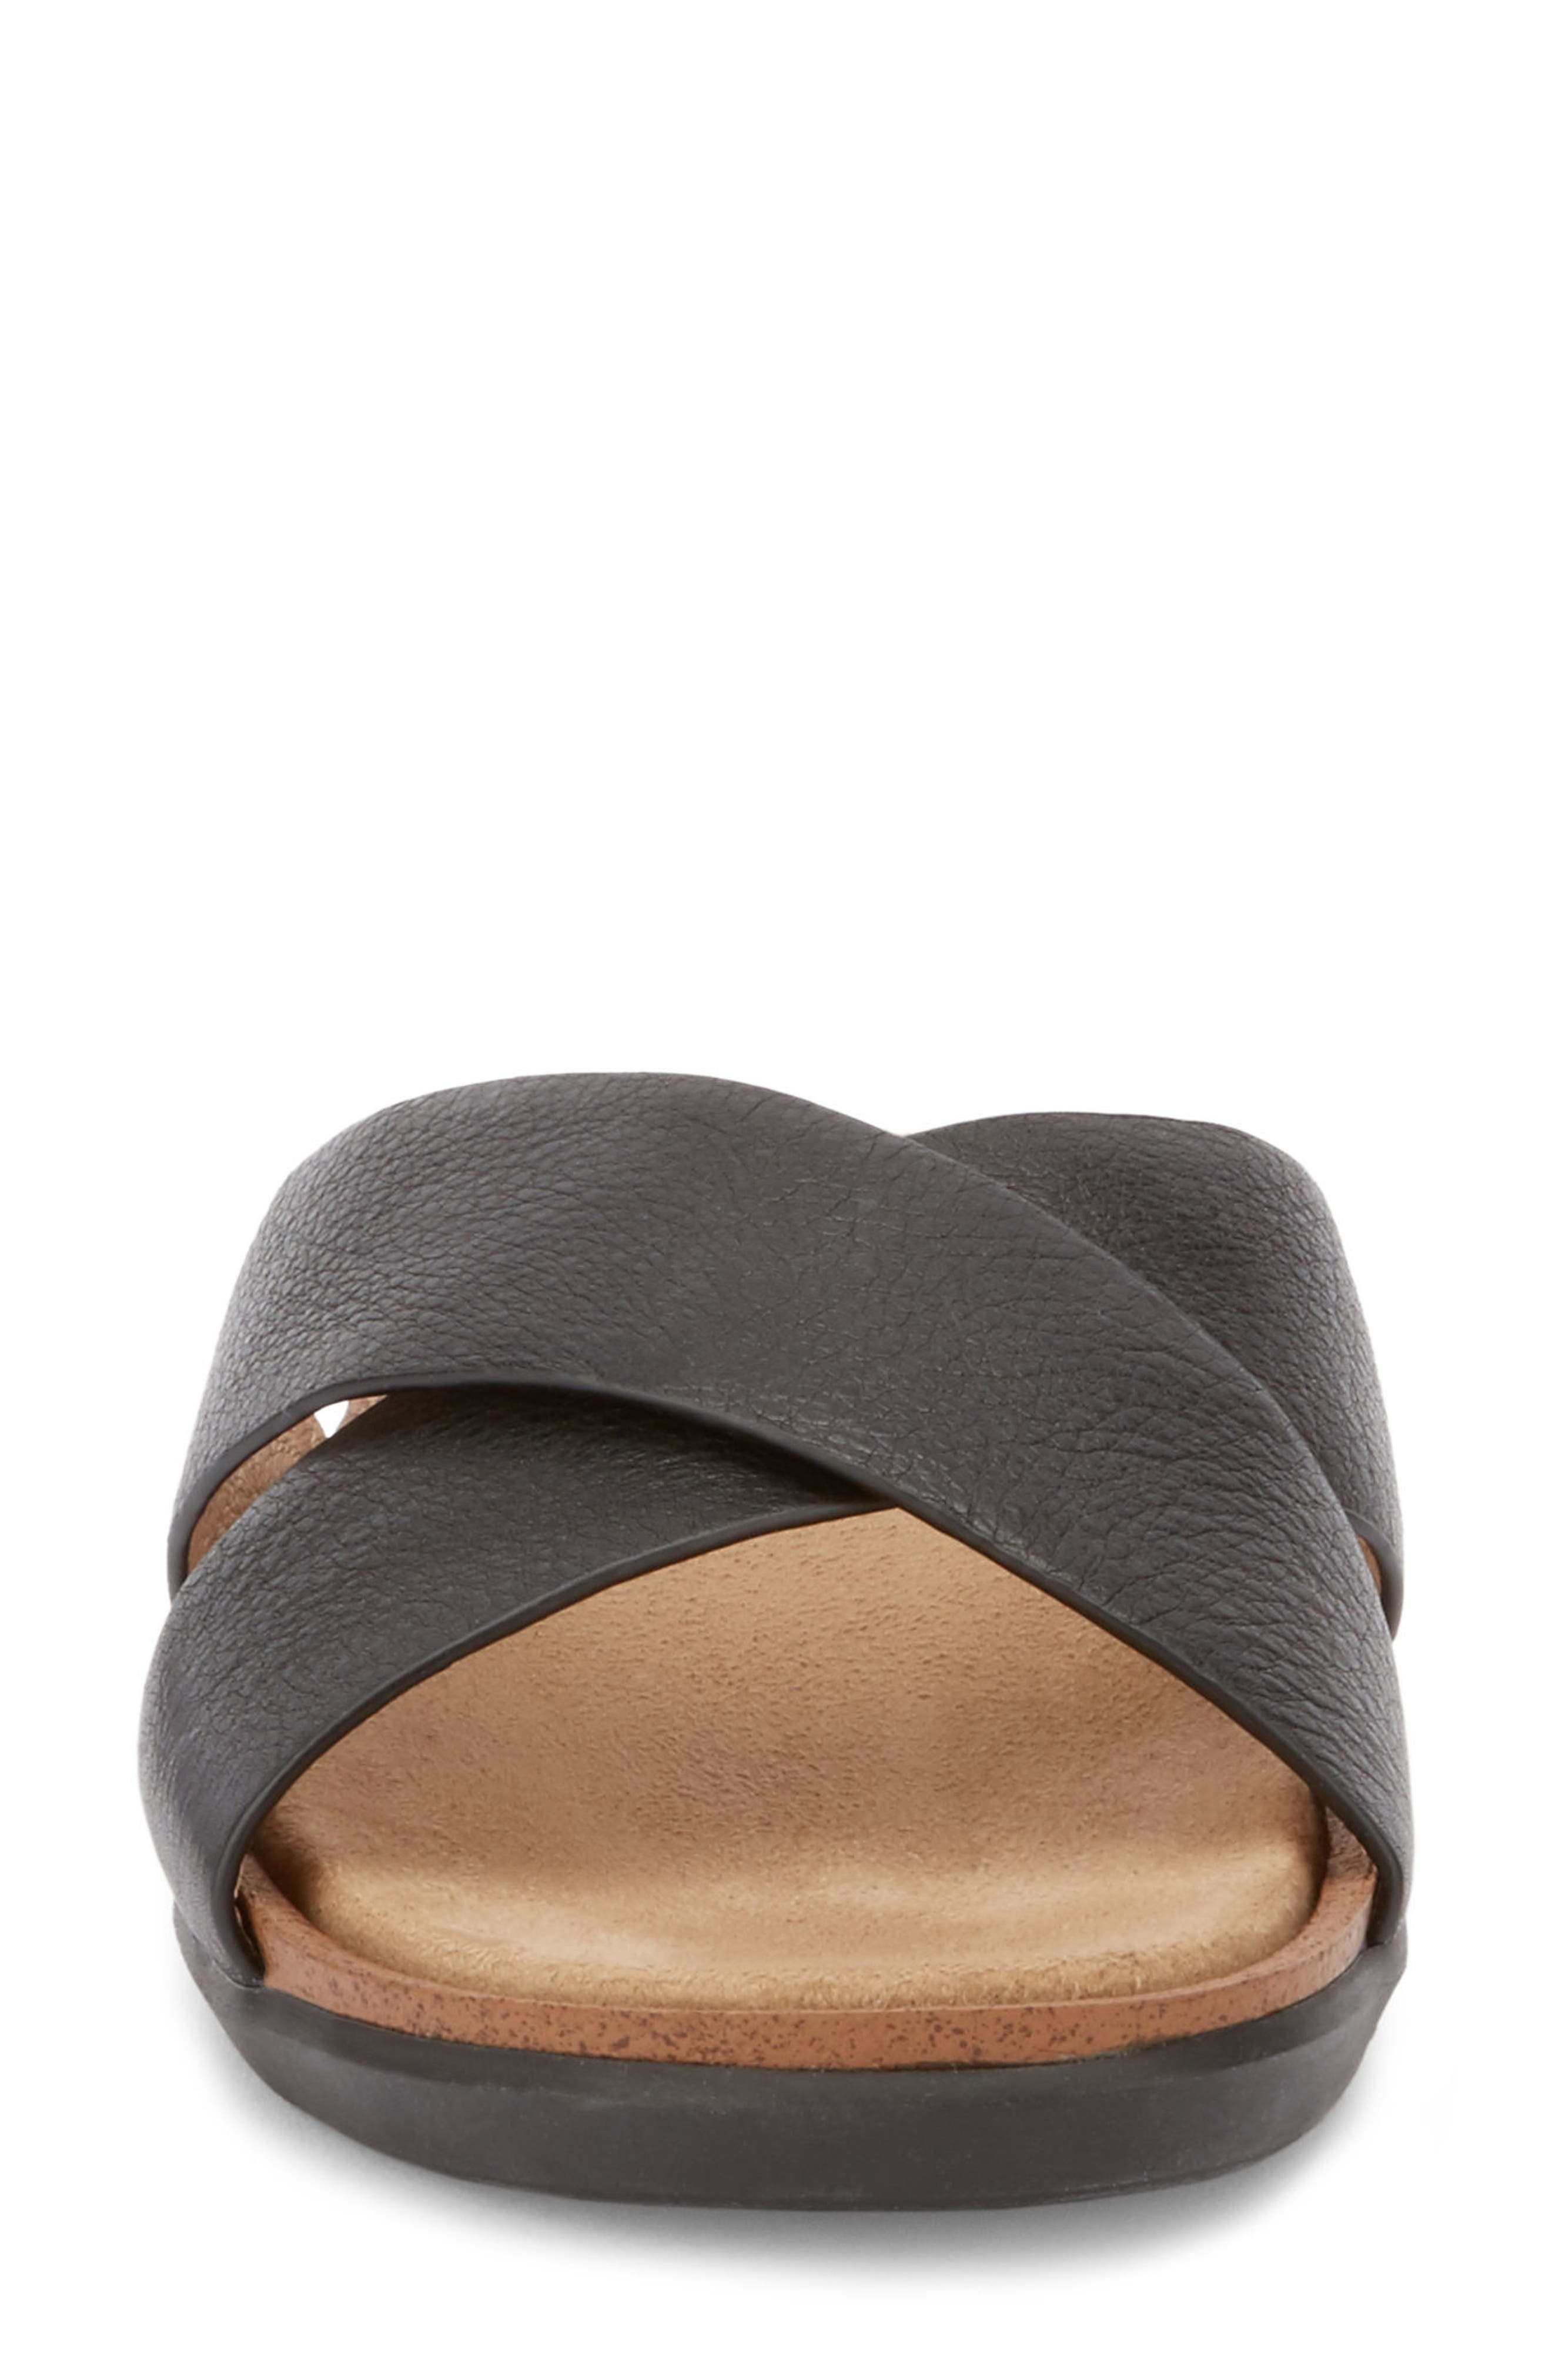 Stella Slide Sandal,                             Alternate thumbnail 4, color,                             BLACK LEATHER